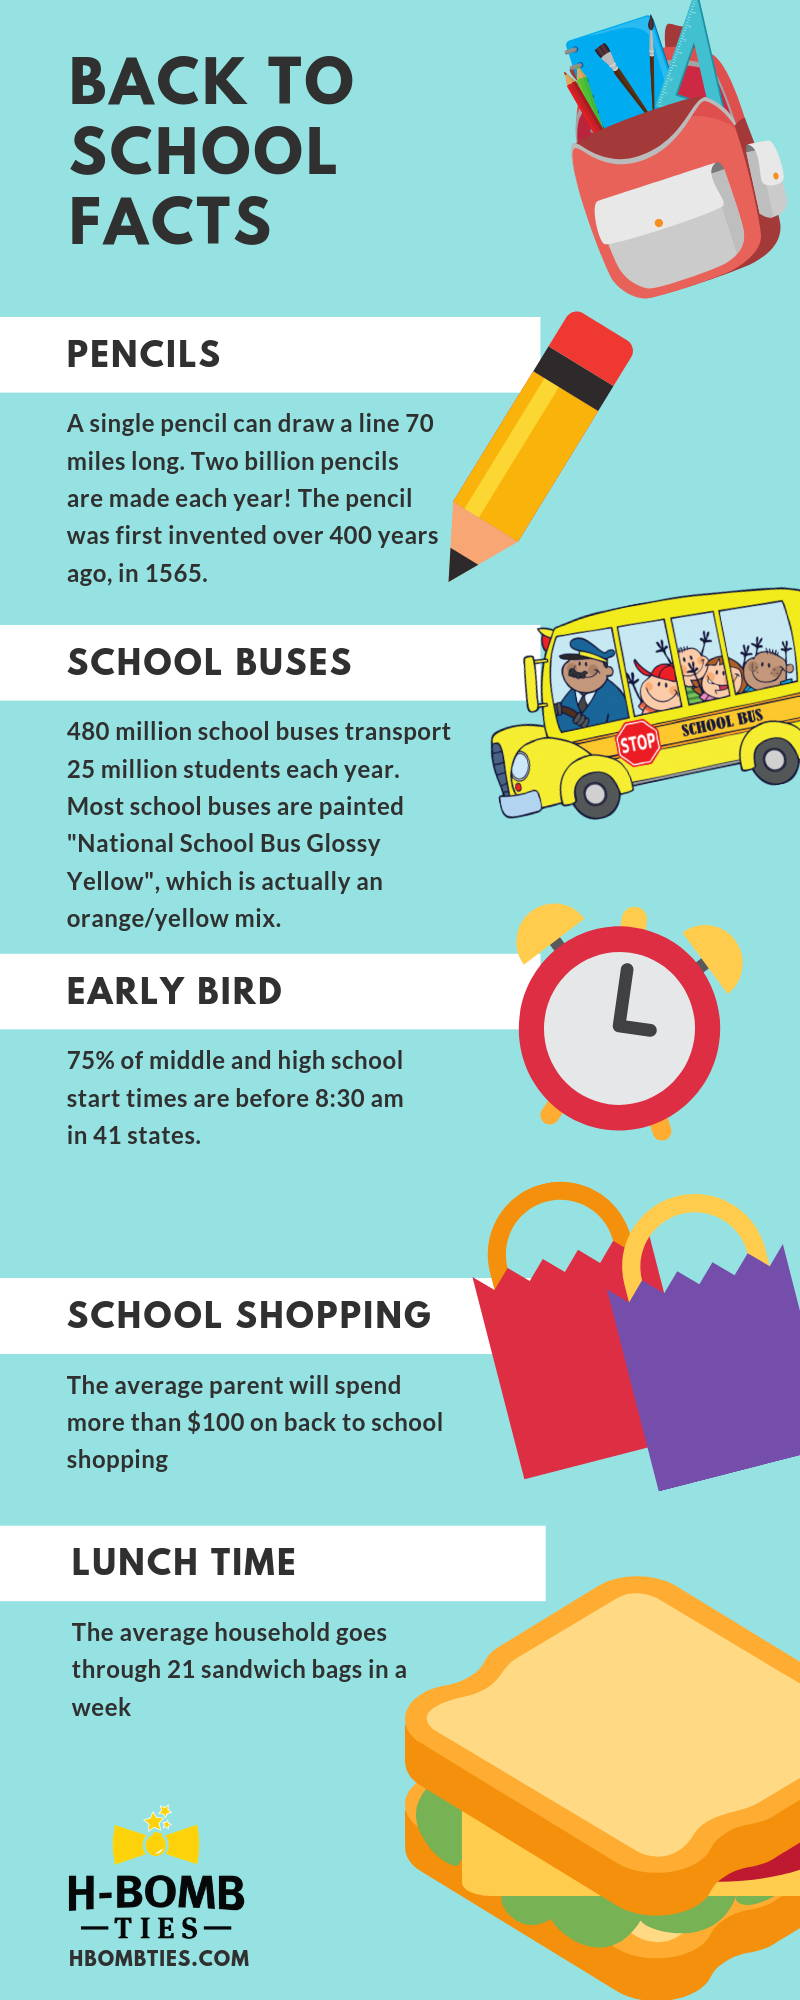 Back to school facts infographic